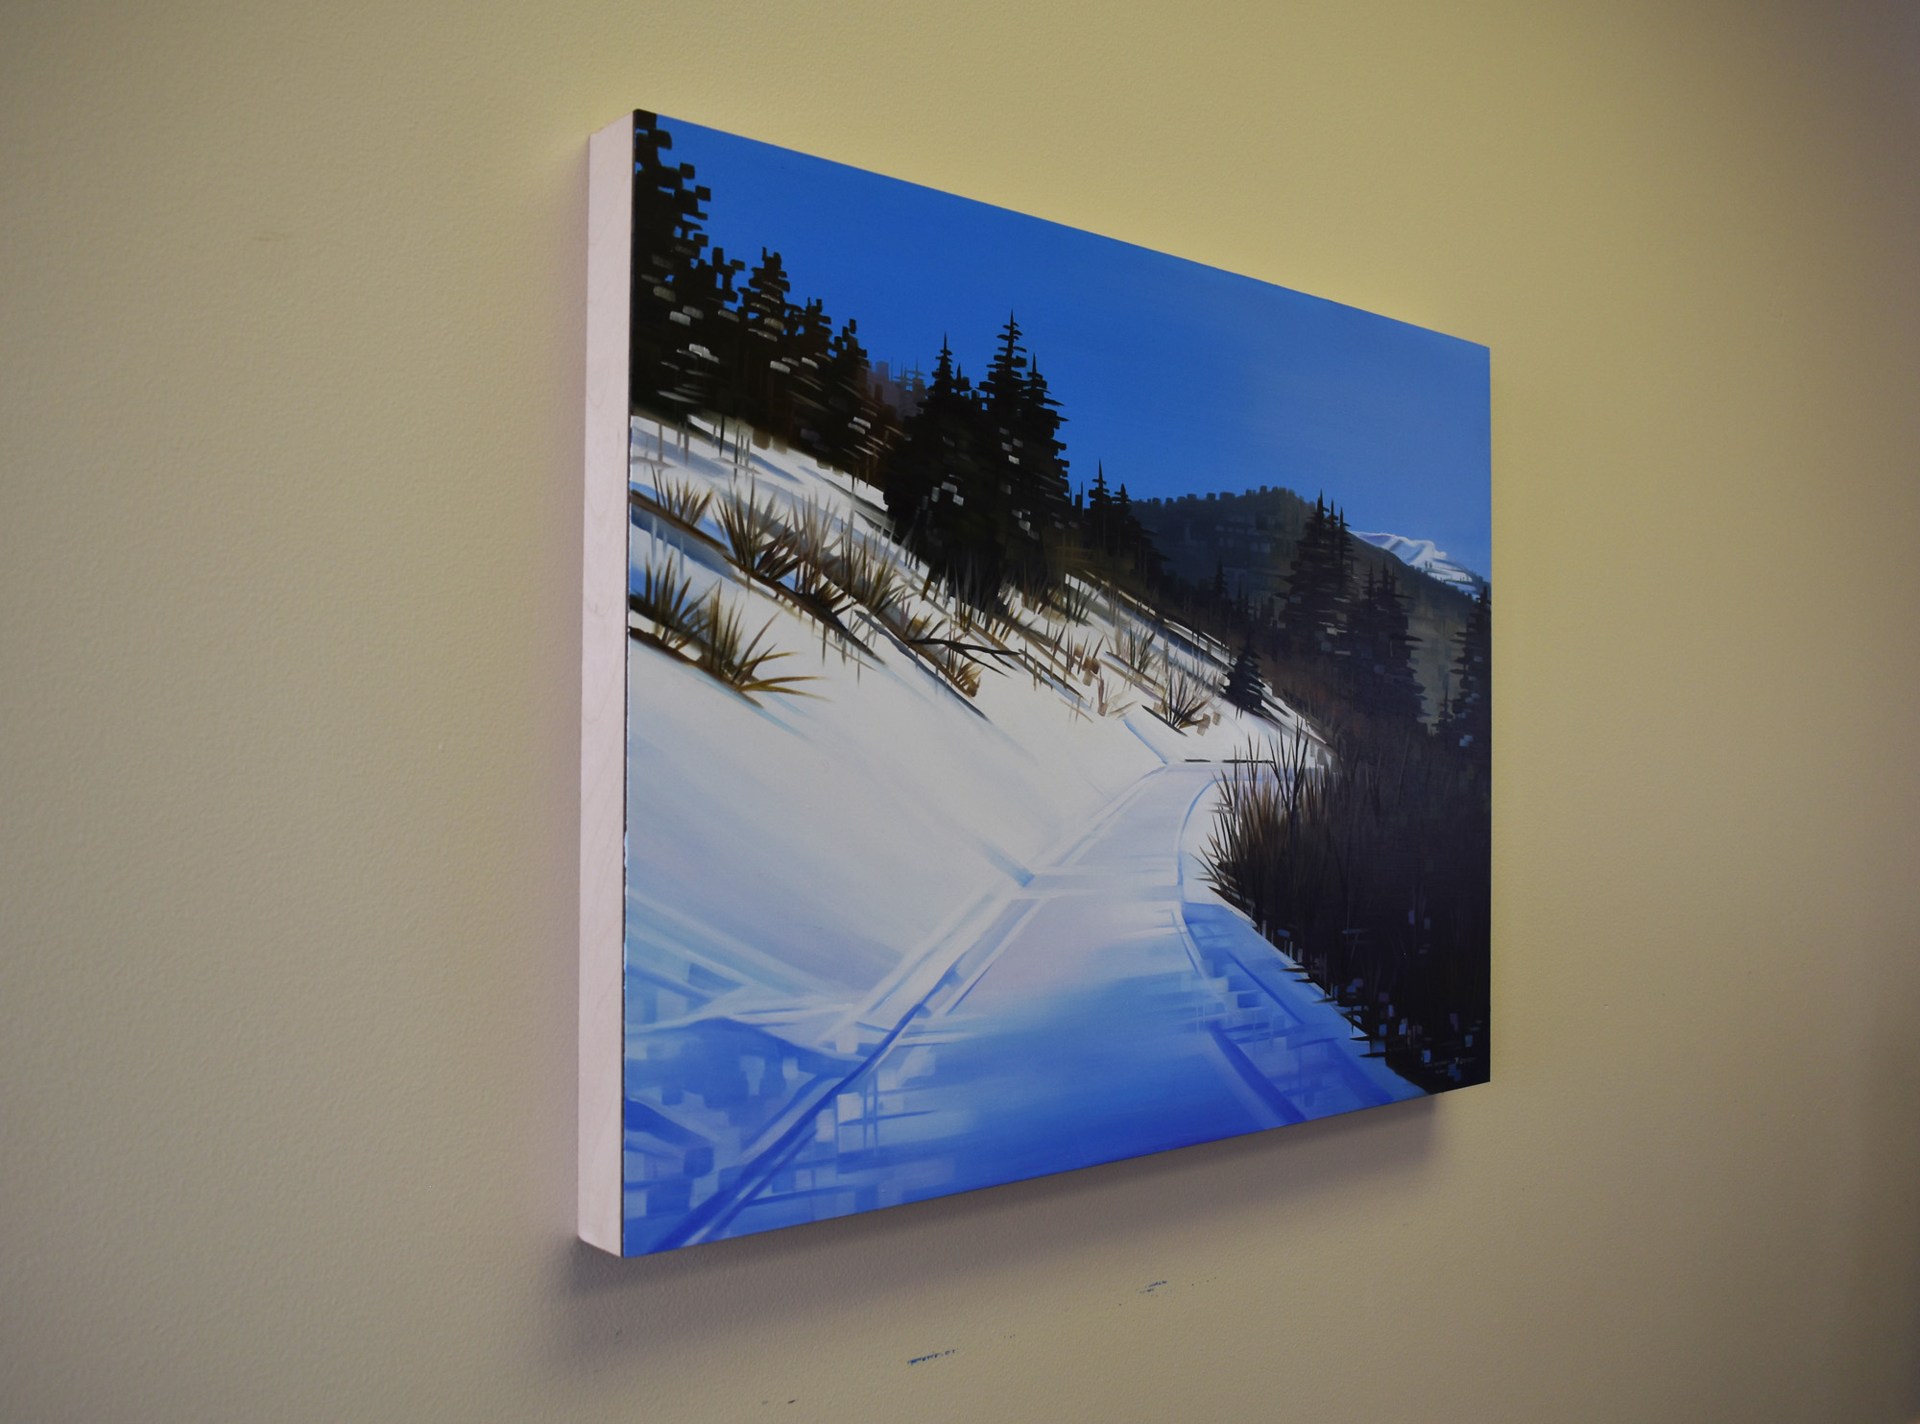 Landscape Oil painting by Michelle Condrat   Title: Winter Journey   Year created: 2020   Medium Oil on panel Size: 8 x 24 in Price: $3,200.00